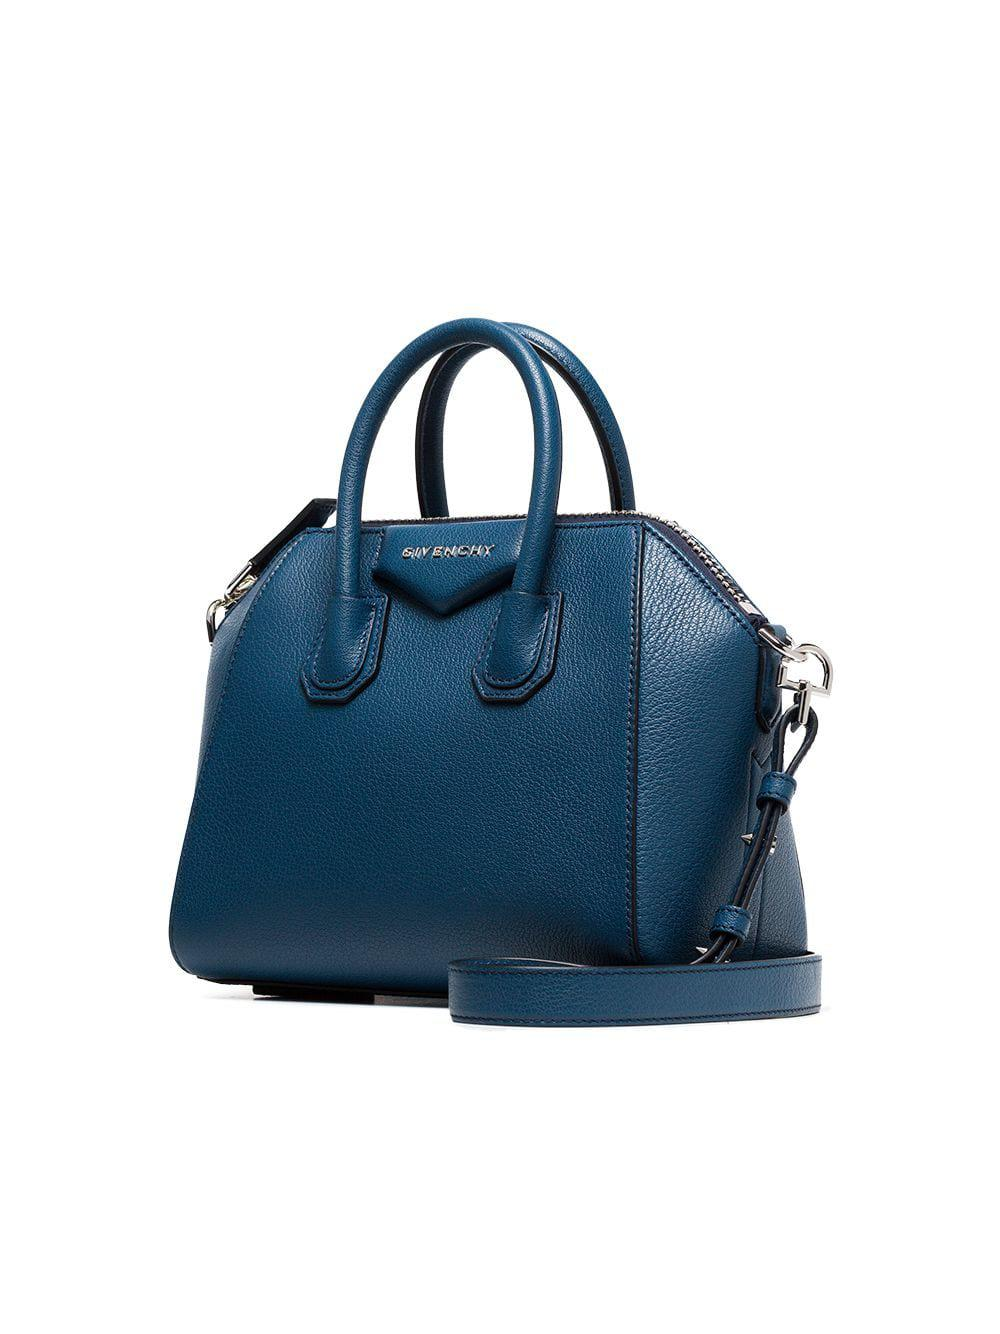 best authentic 5fe47 561e7 Givenchy - Blue Antigona Mini Leather Tote - Lyst . 667153a3c2